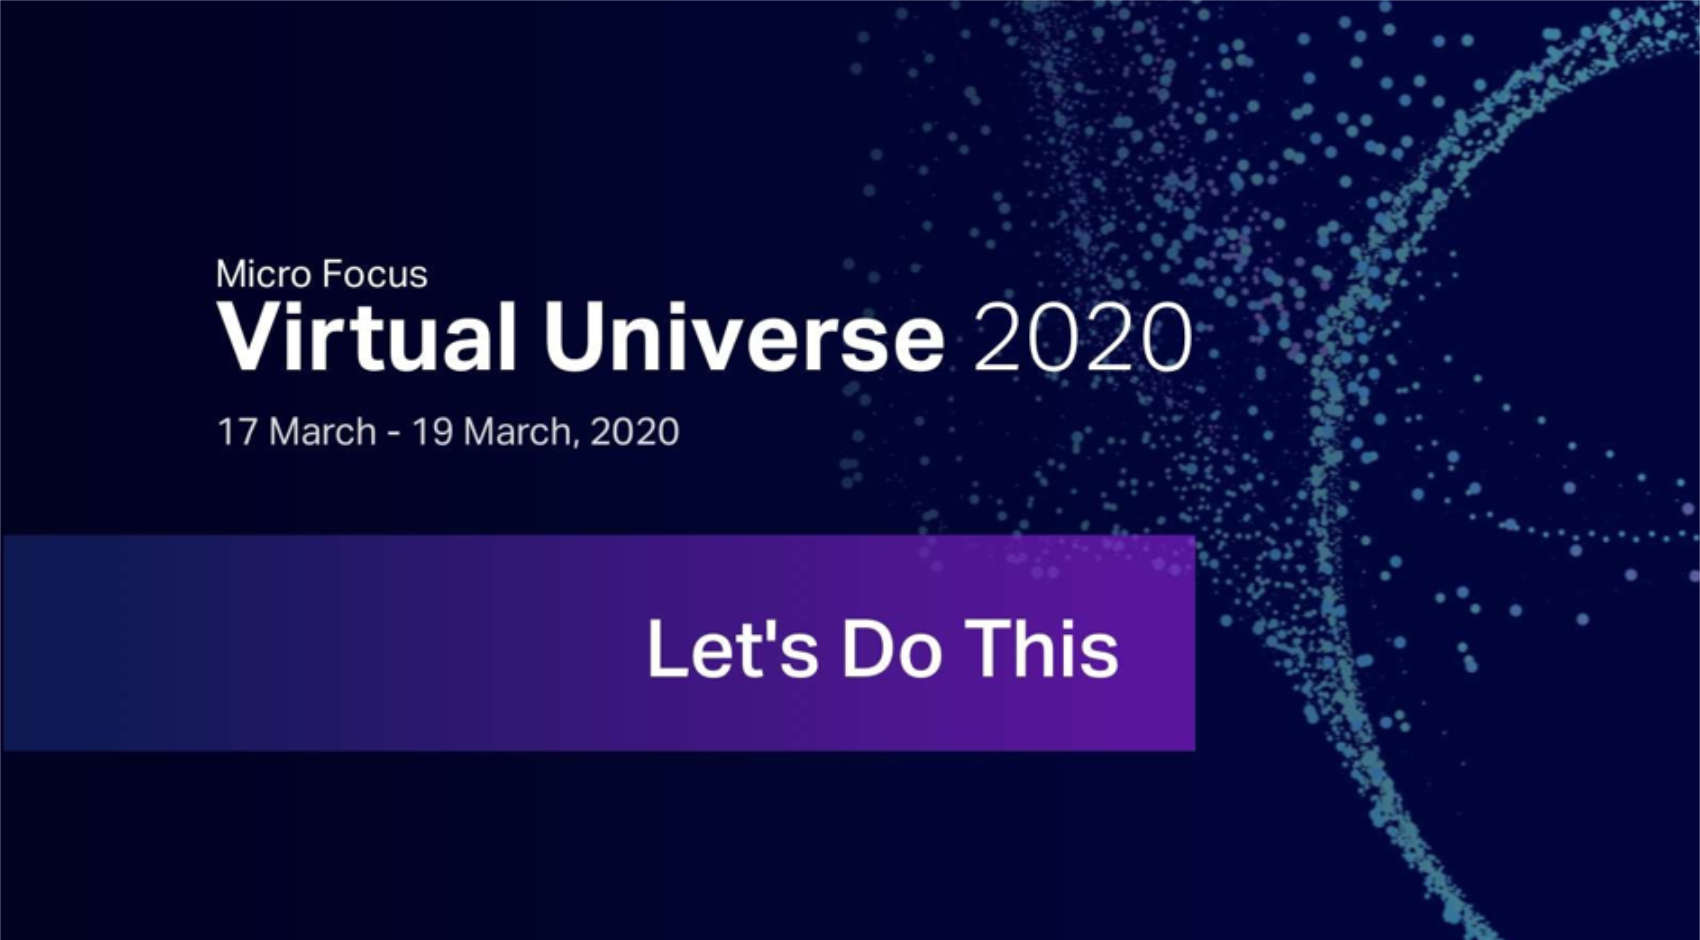 Headerbild mit Virtual Universe 2020